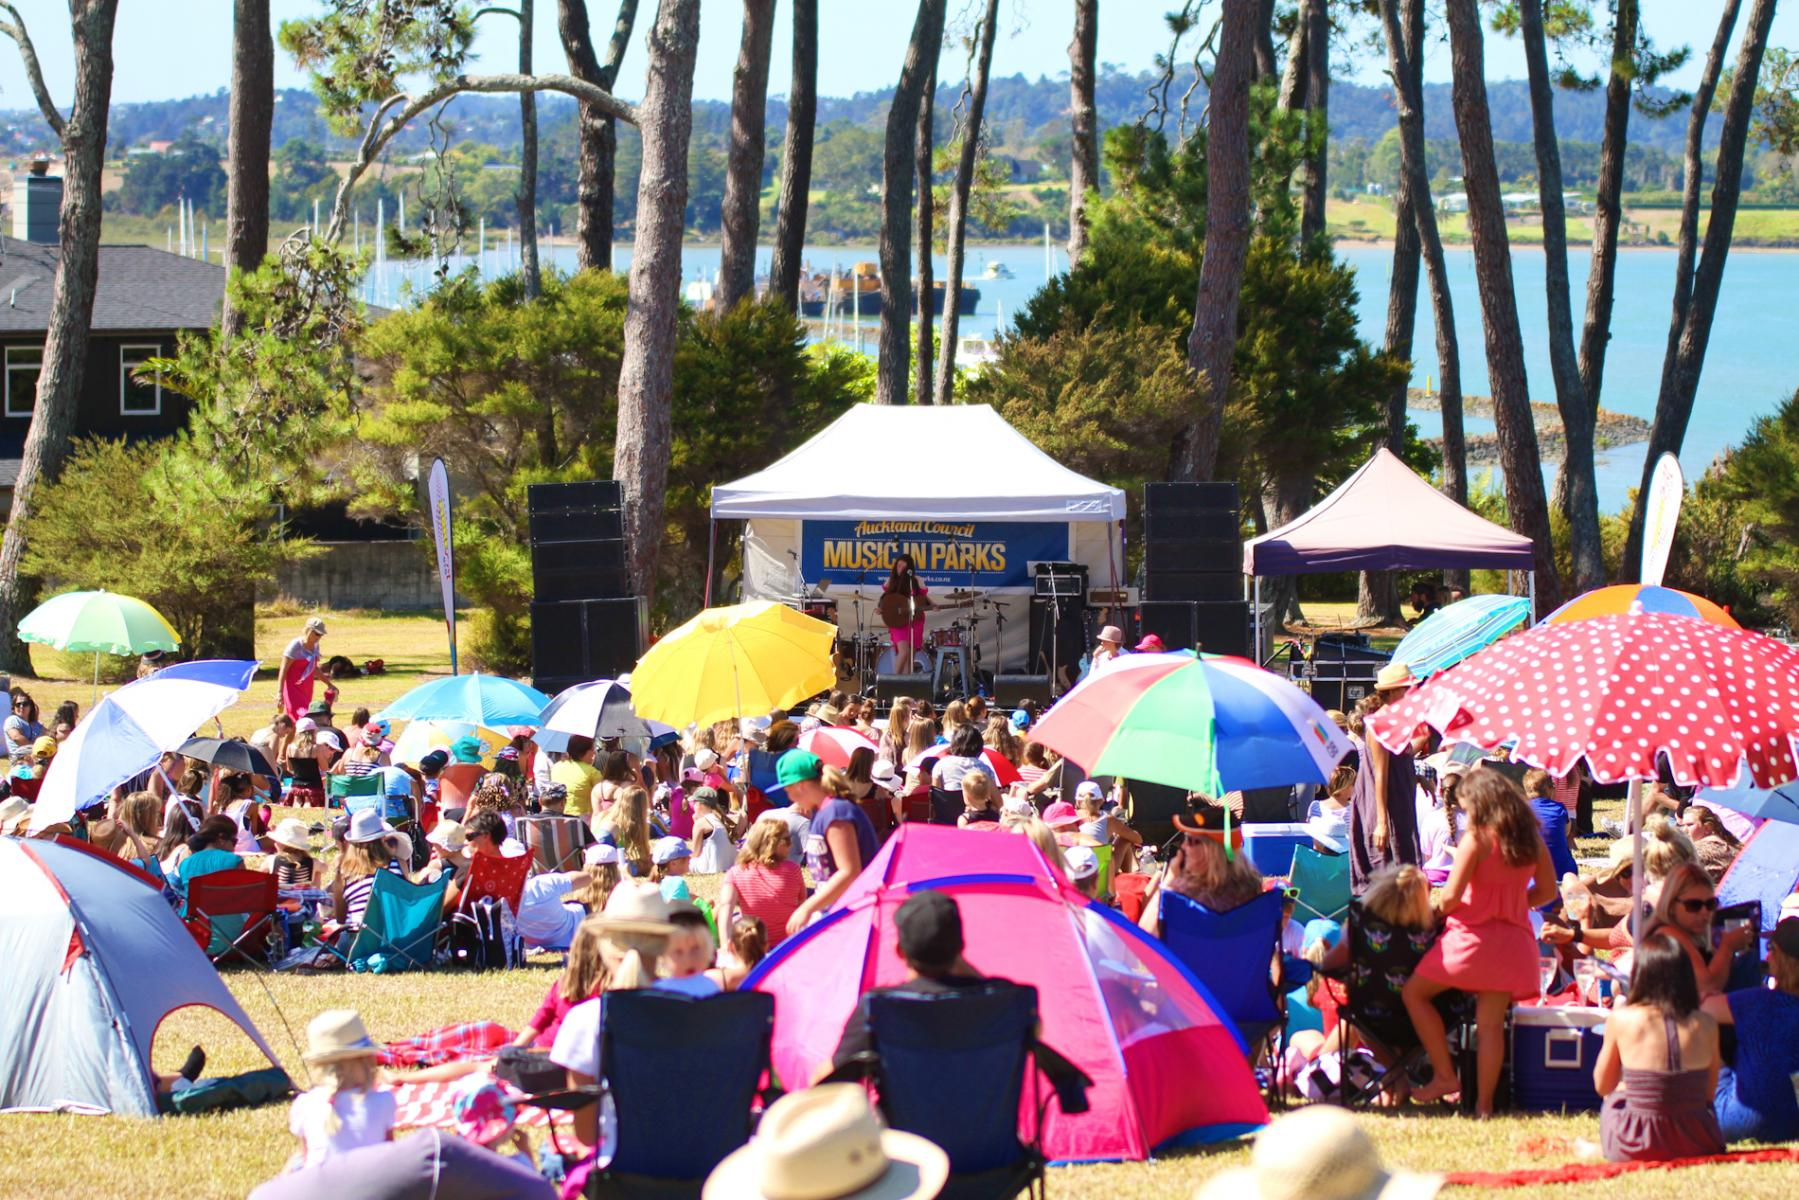 Crowd for Jamie McDell - Music In Parks - Luckens Reserve - March '13